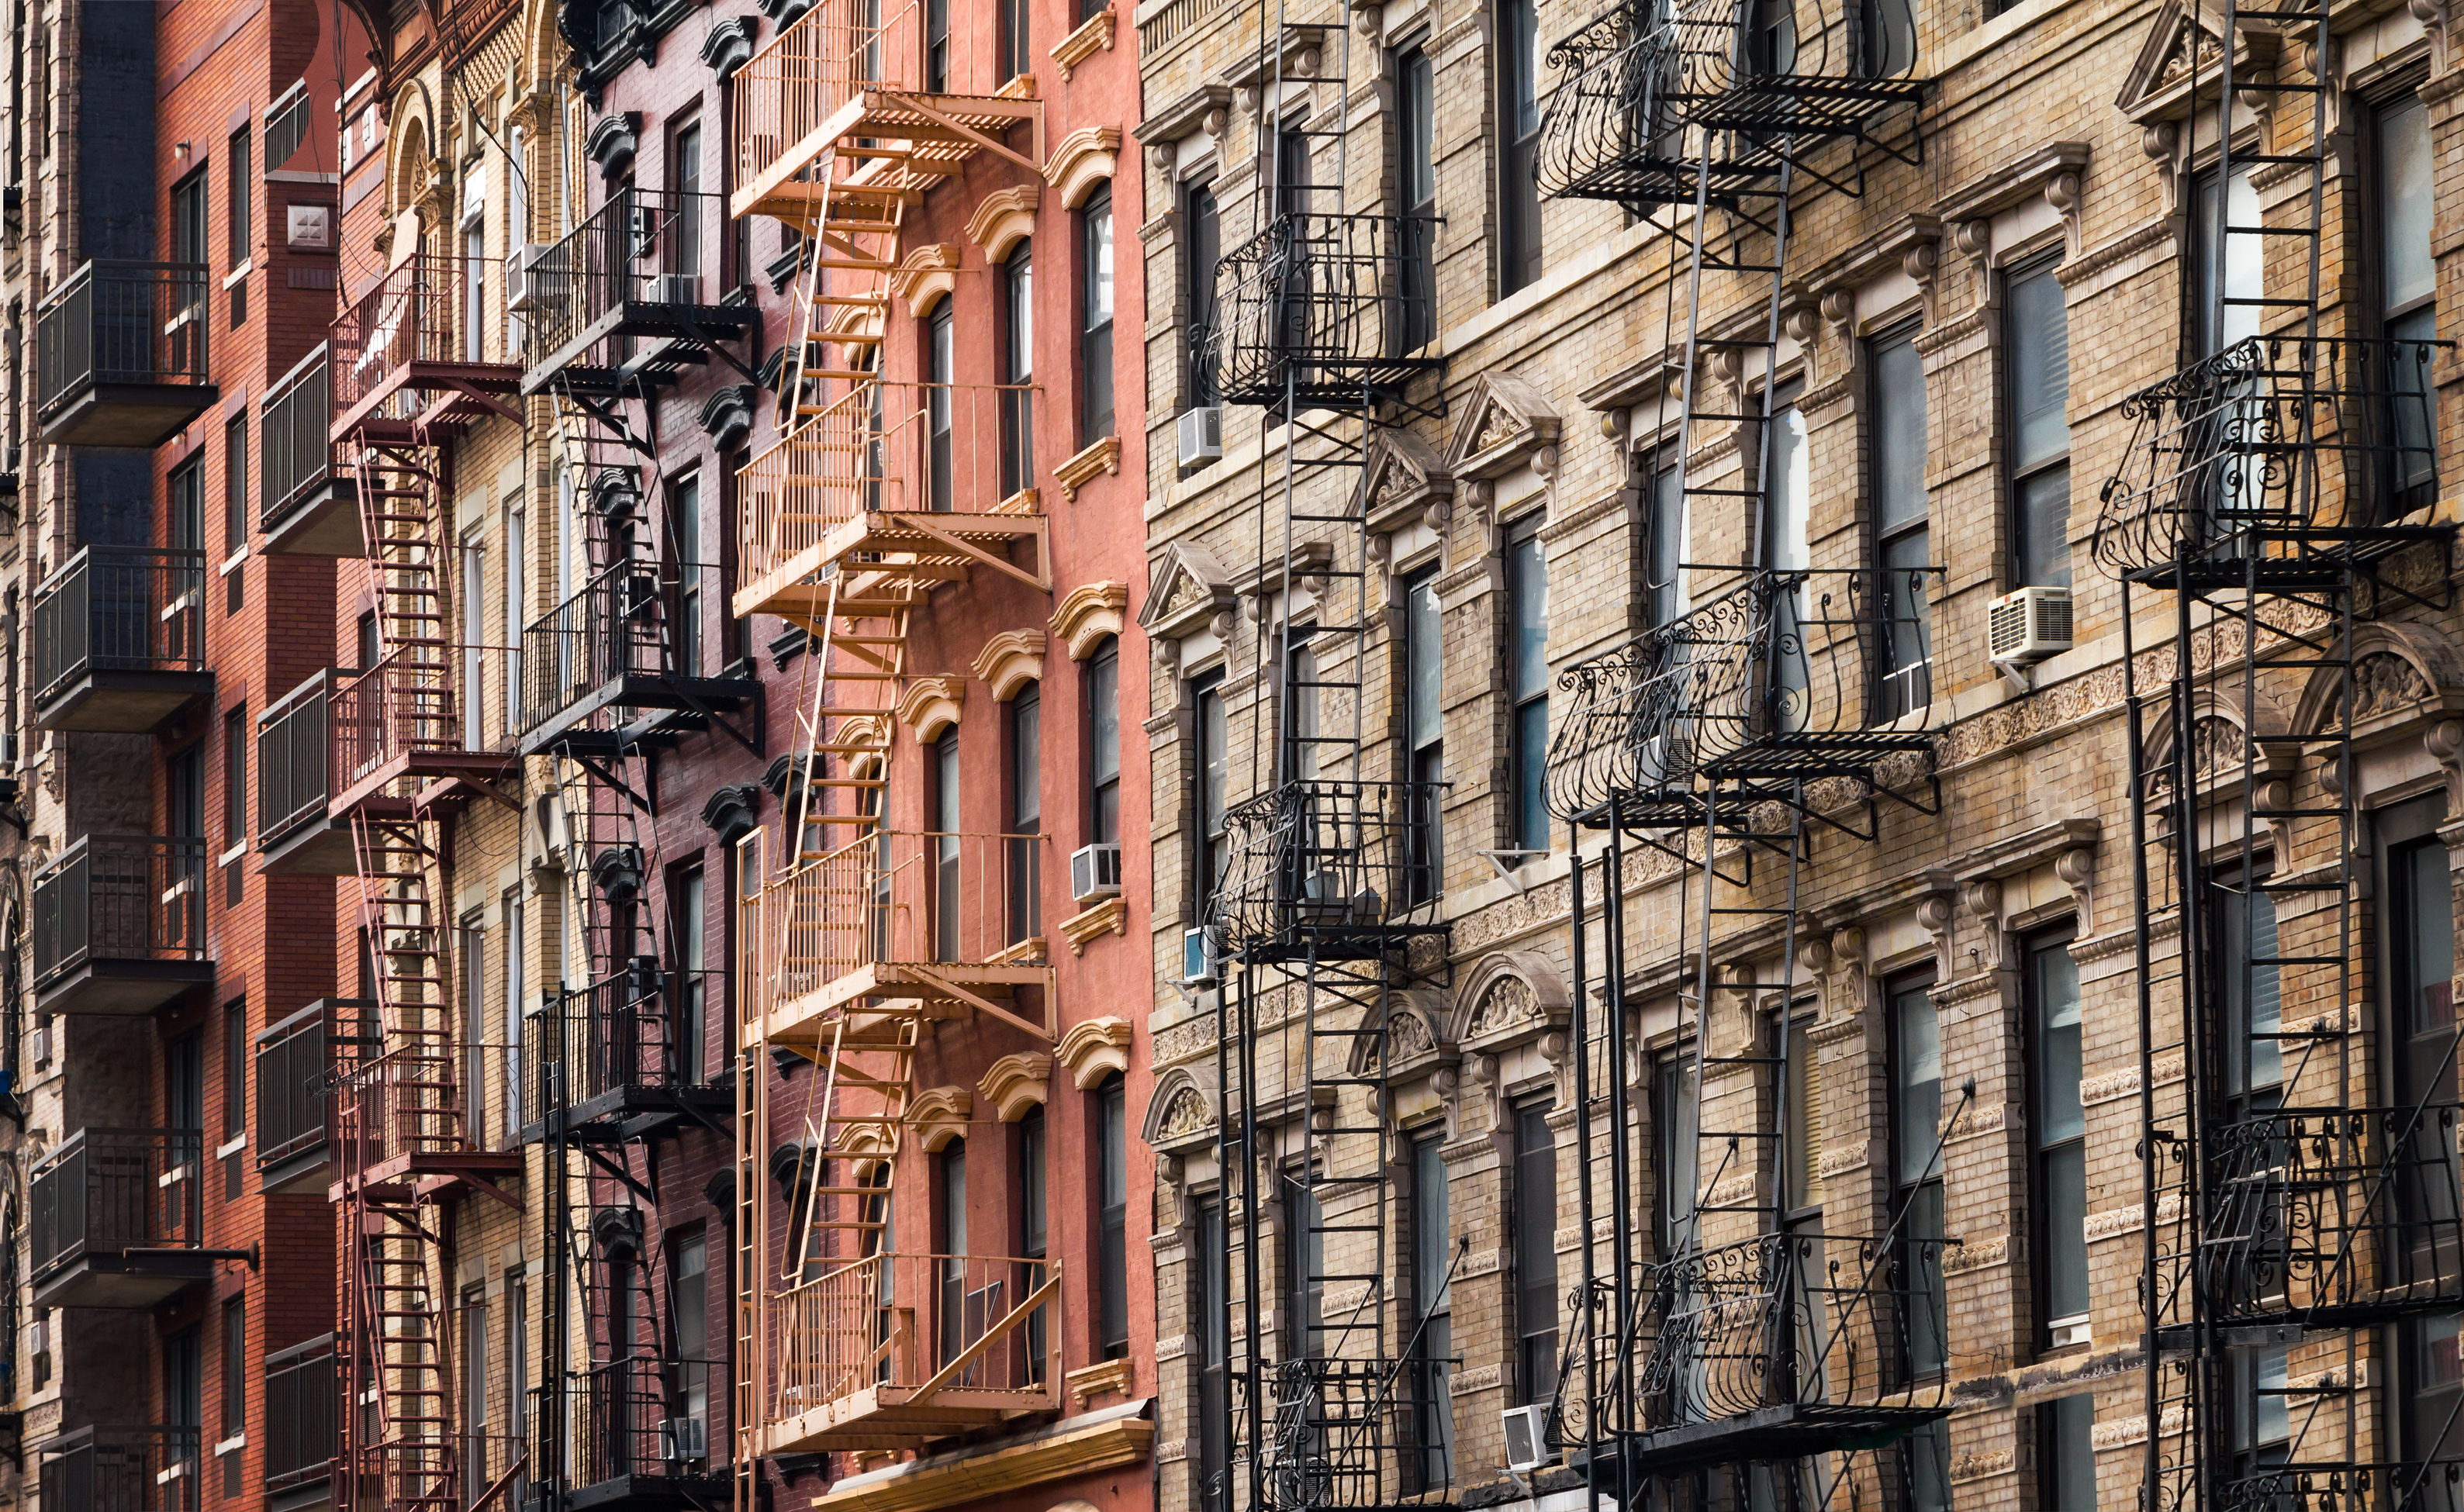 A close-up view of a row of apartment buildings with fire escapes.